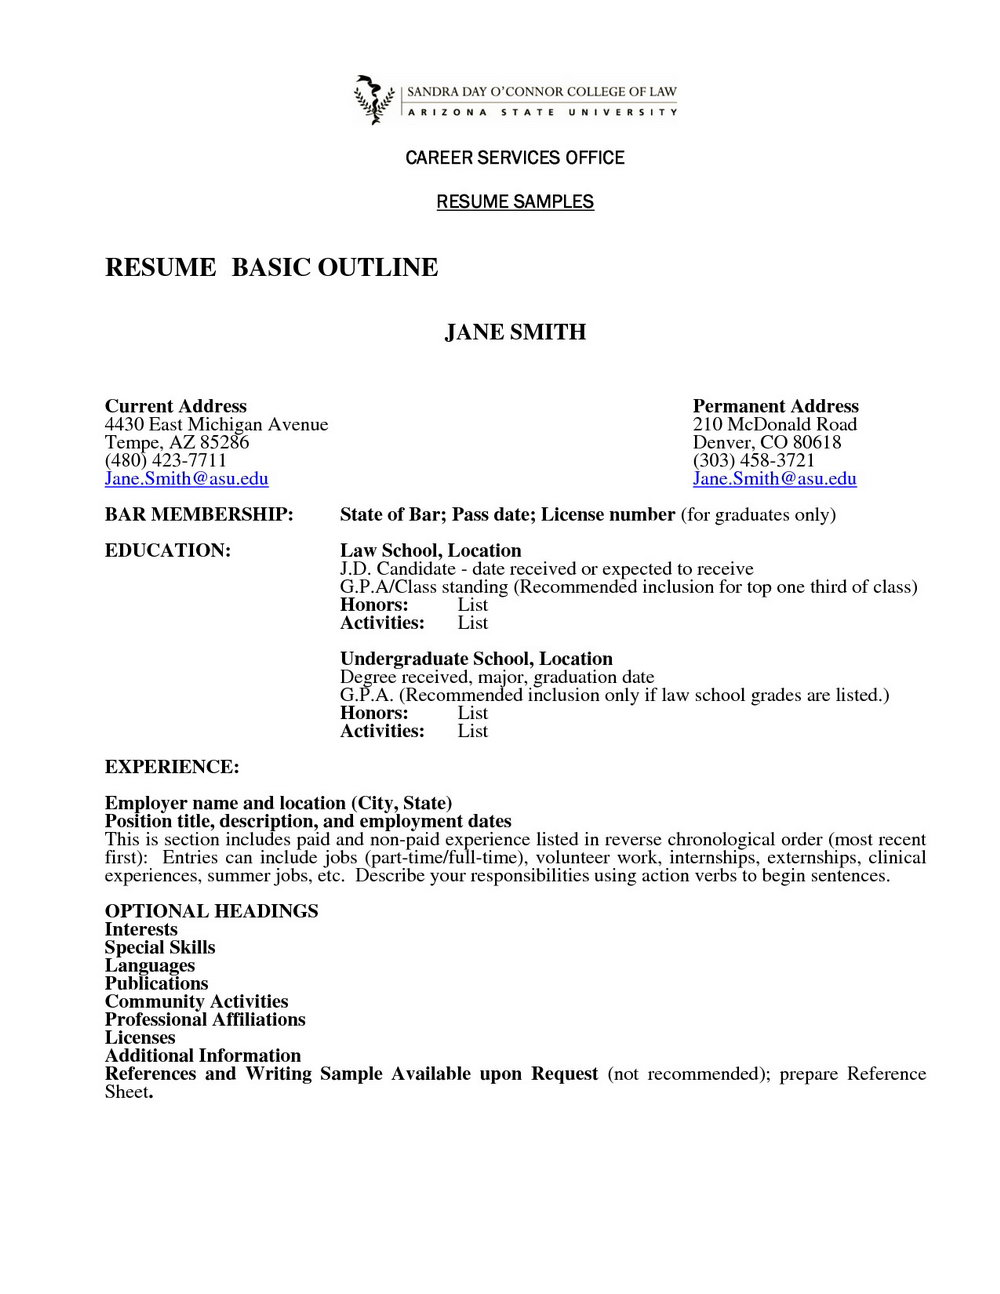 Resume Example Resume Template Outline Resume Outline ...